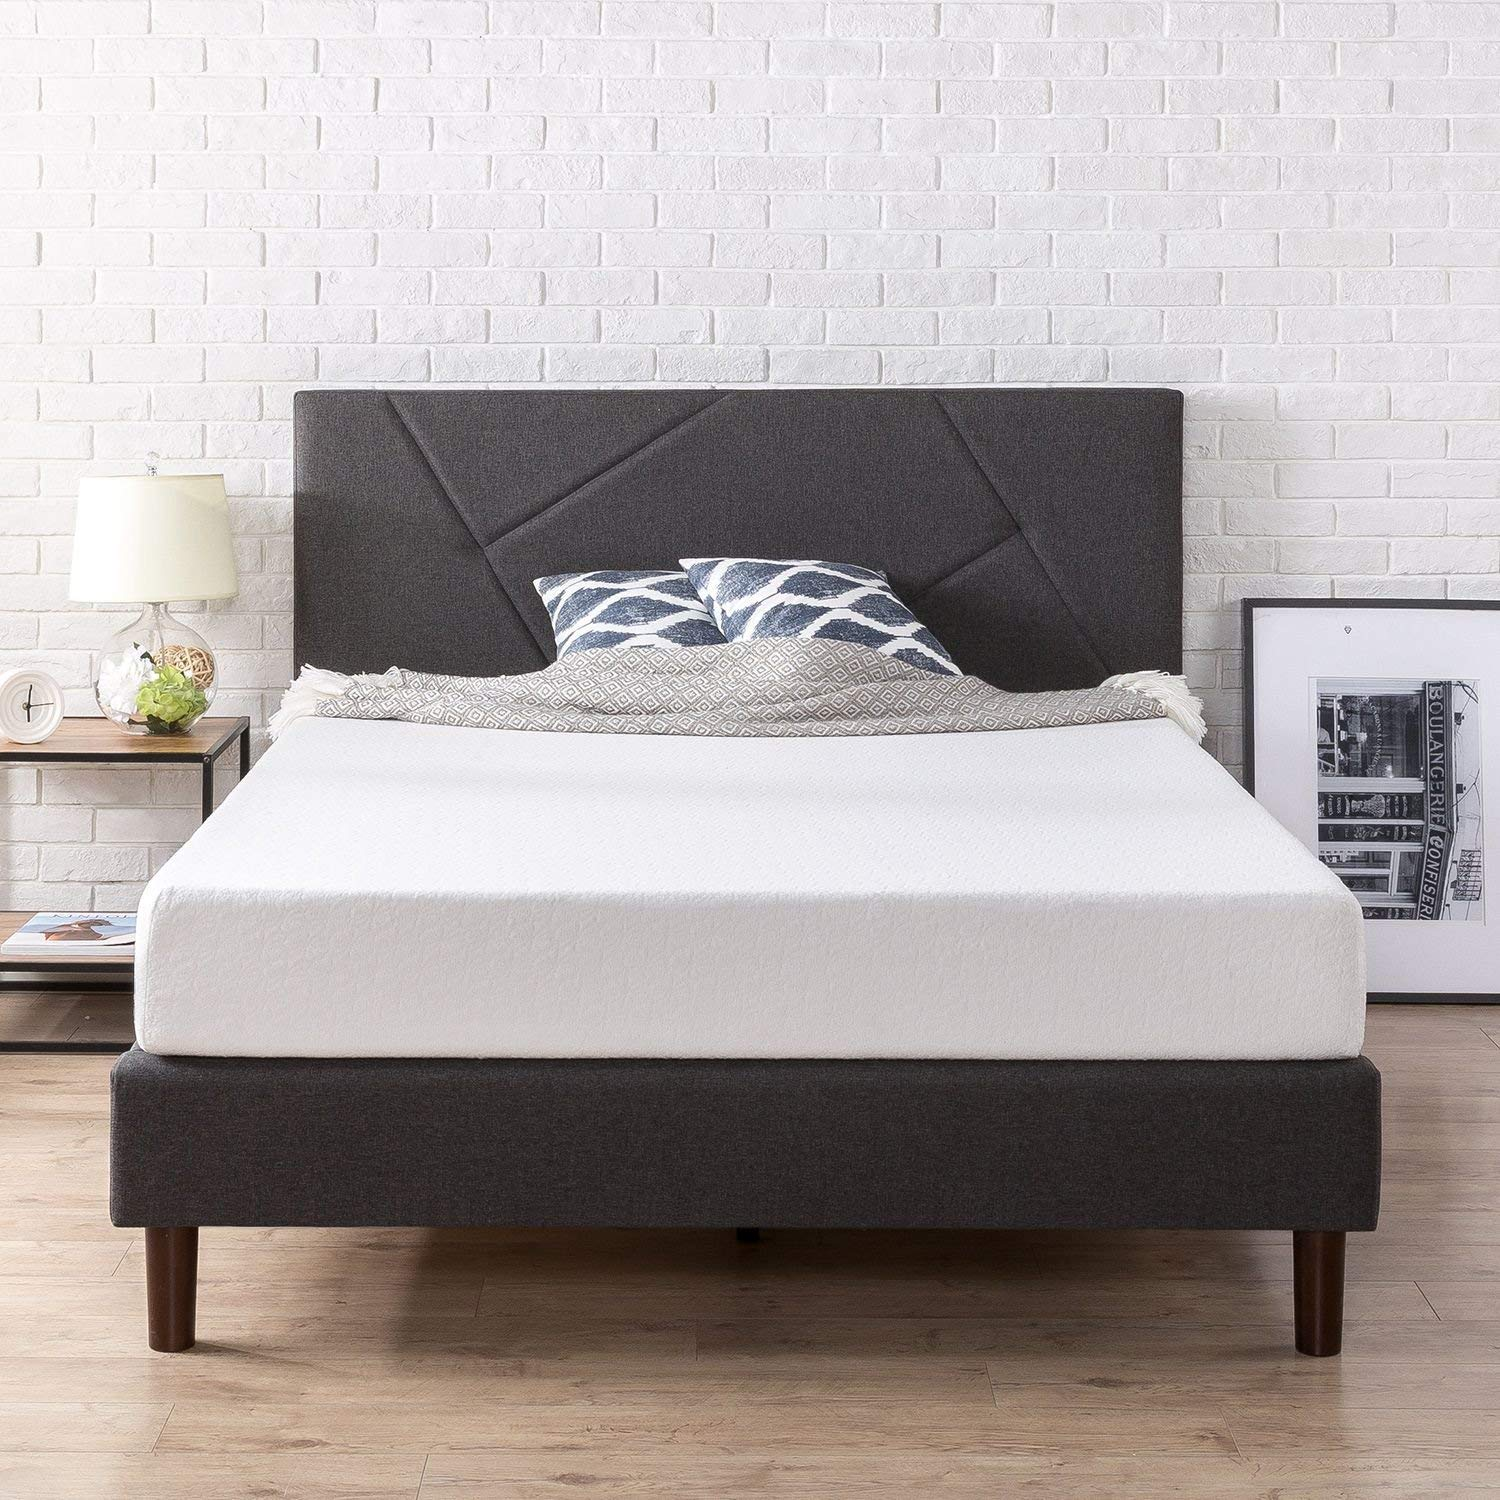 Zinus Queen-Sized Upholstered Platform Bed